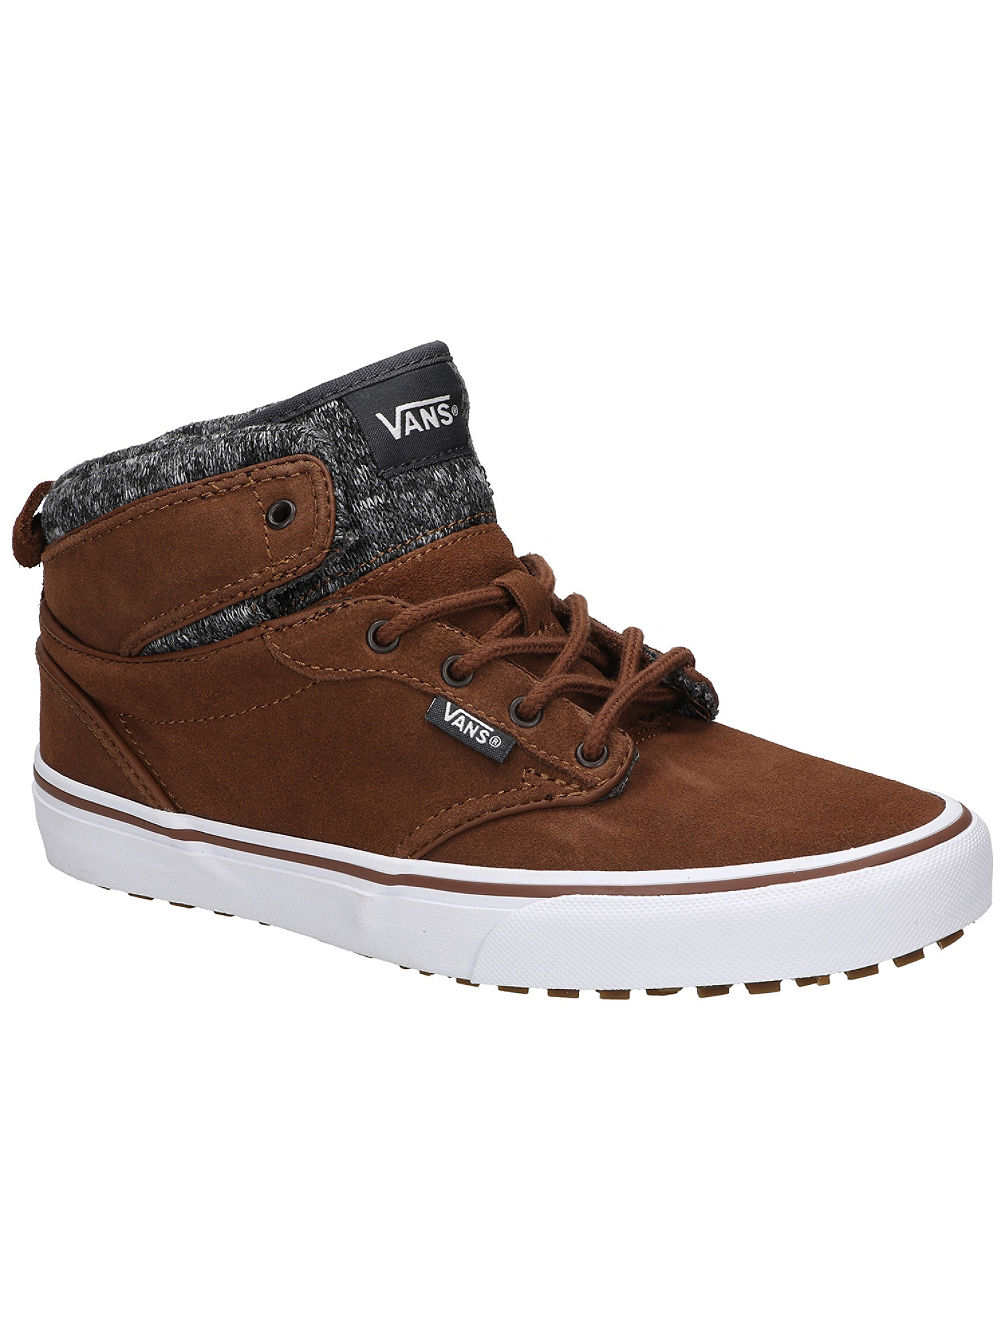 MTE Atwood HI Sneakers Boys